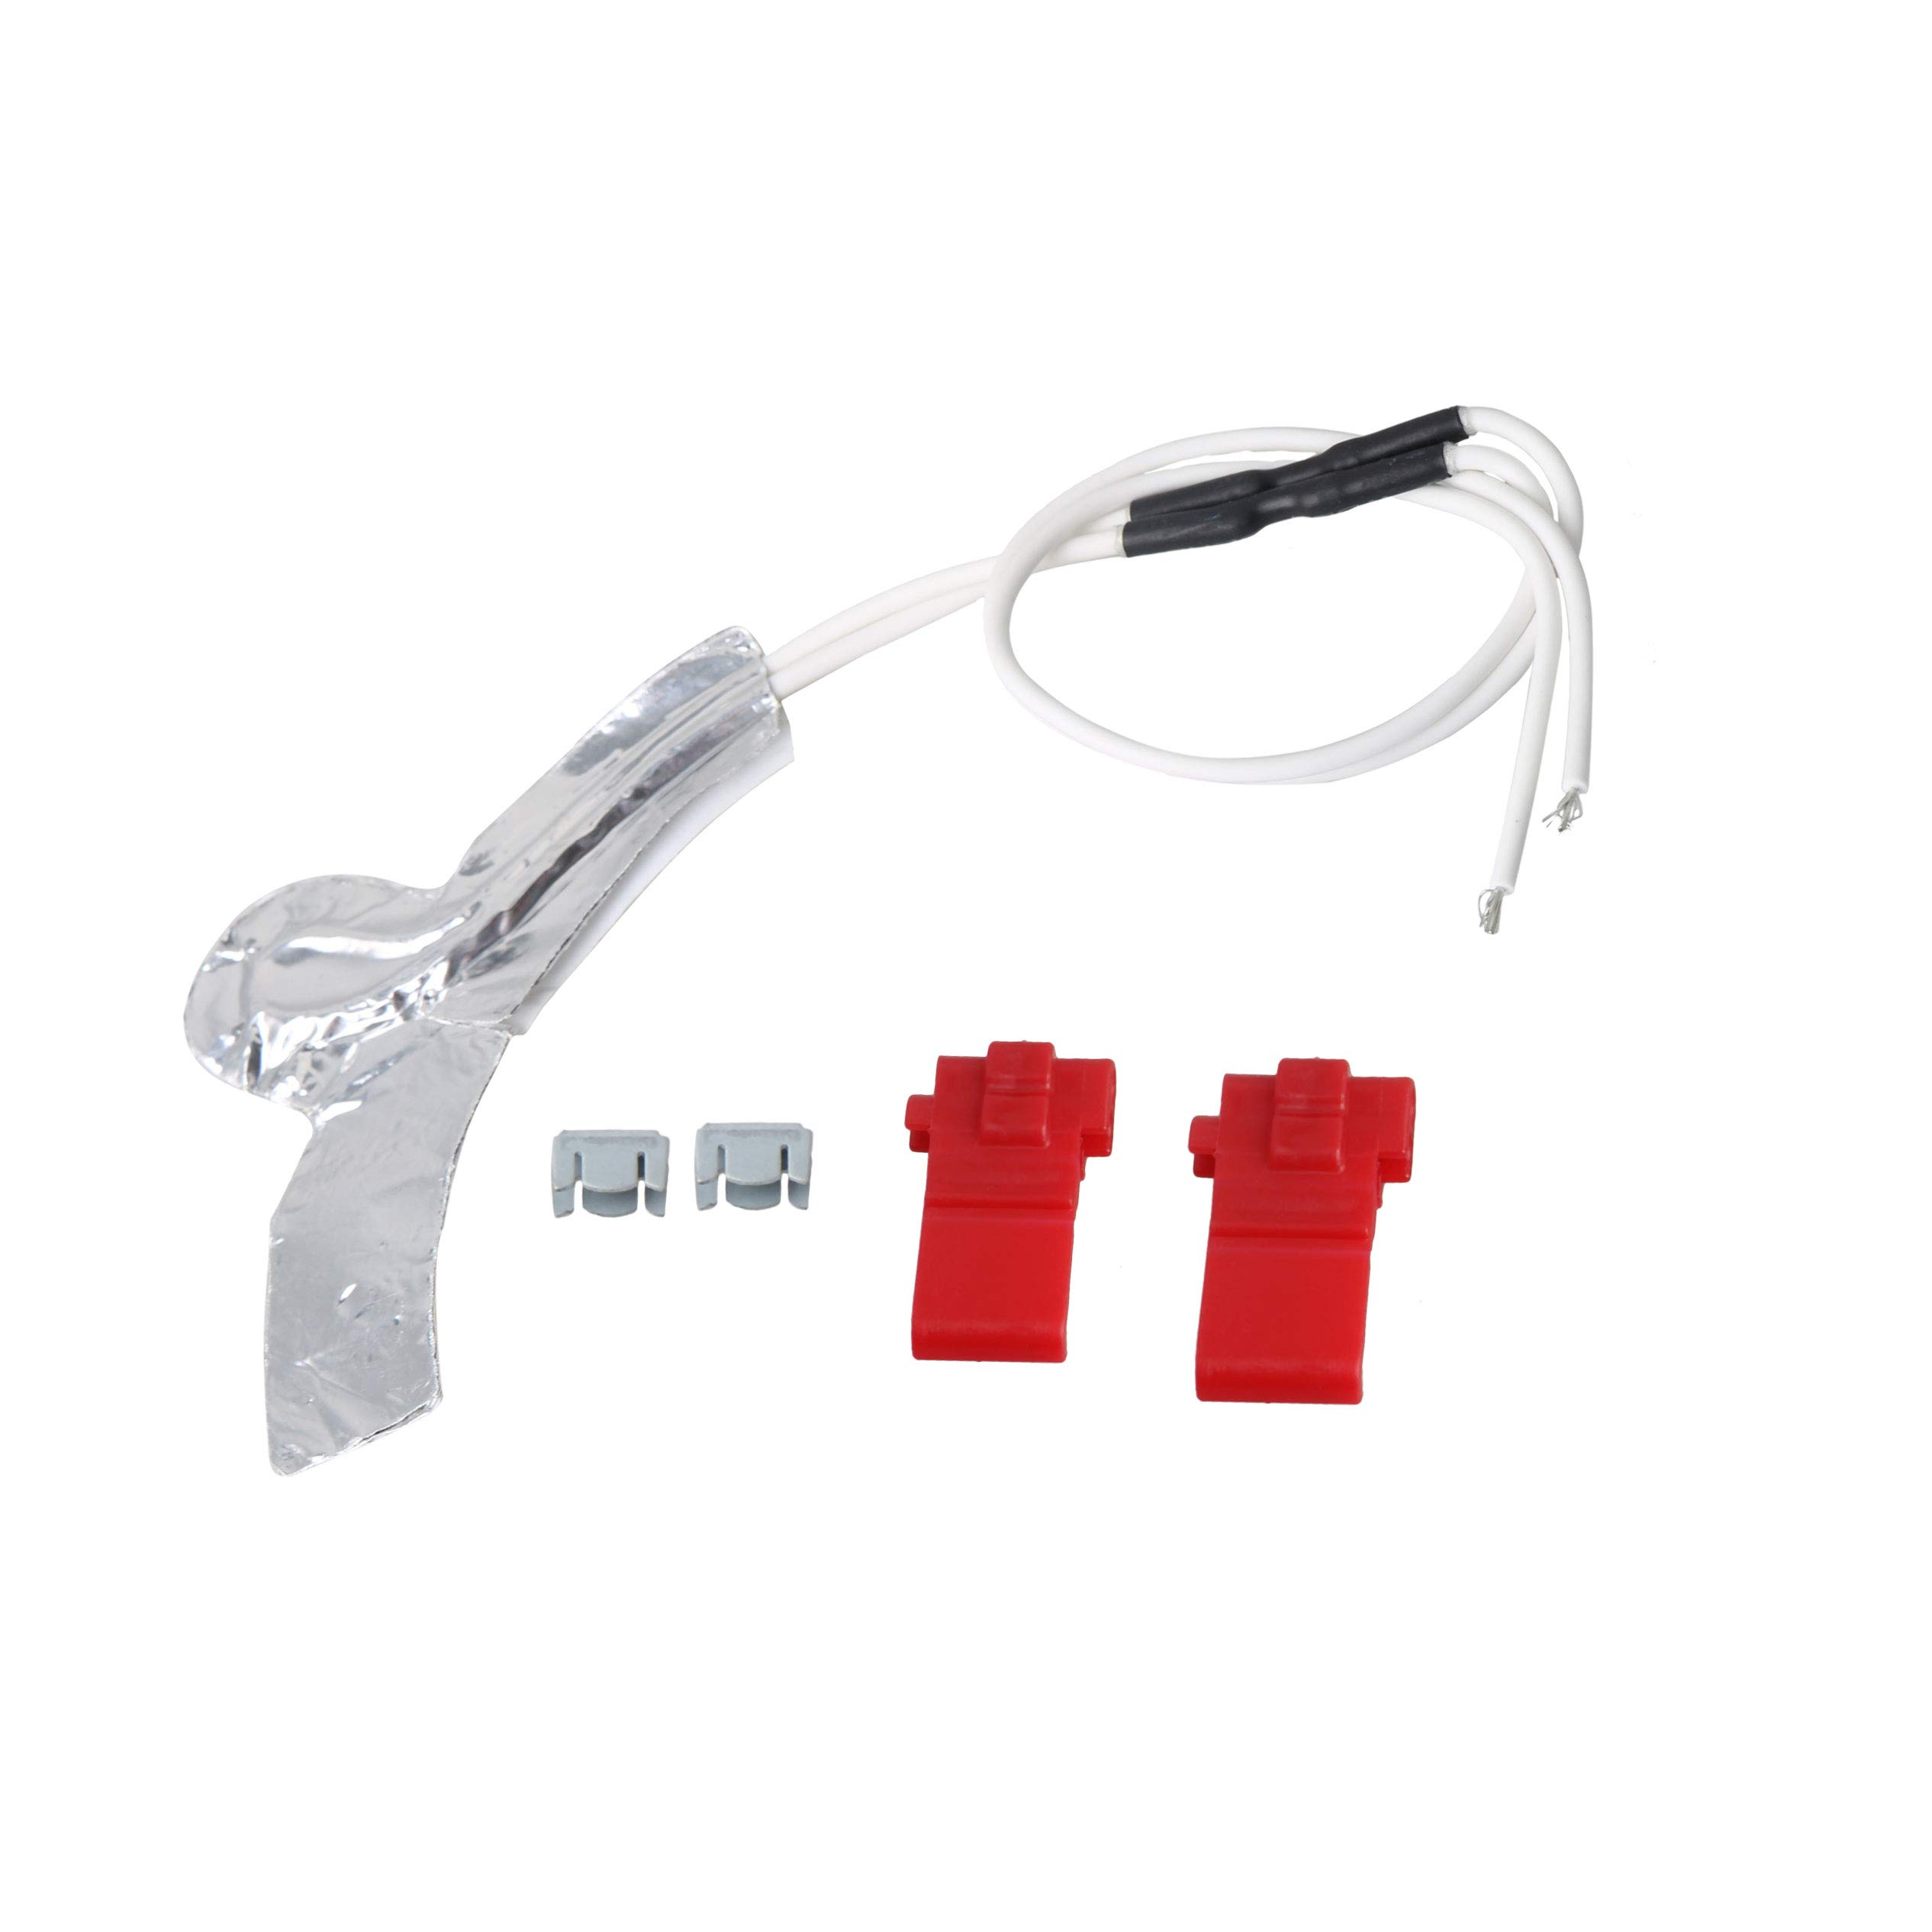 Mxfans Freezer Dispenser Water Tube Heater WR49X10173 Kit Replace PS1766223